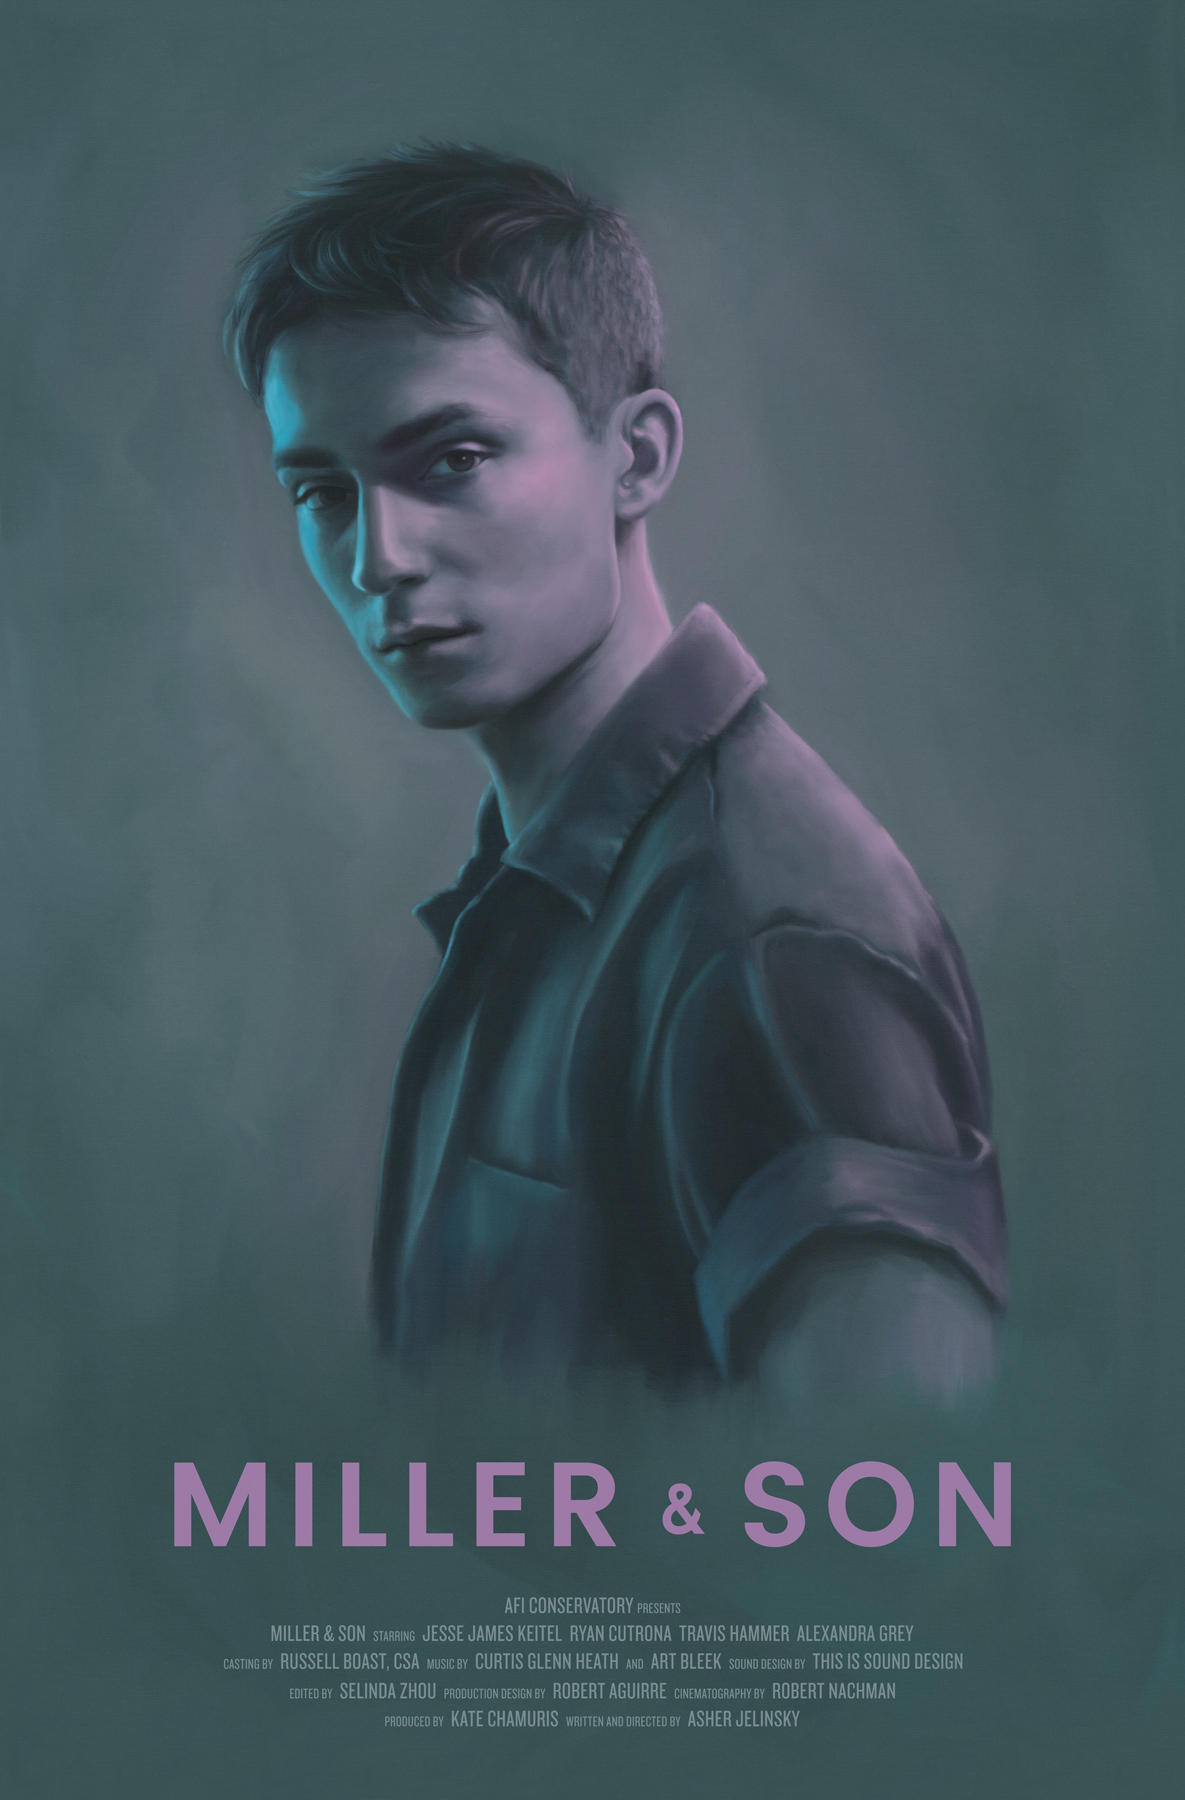 Miller-&-Son_Poster_Final_Layers_AJEditsExposure1_AFIConservatoryPresents_FORWEB.jpg